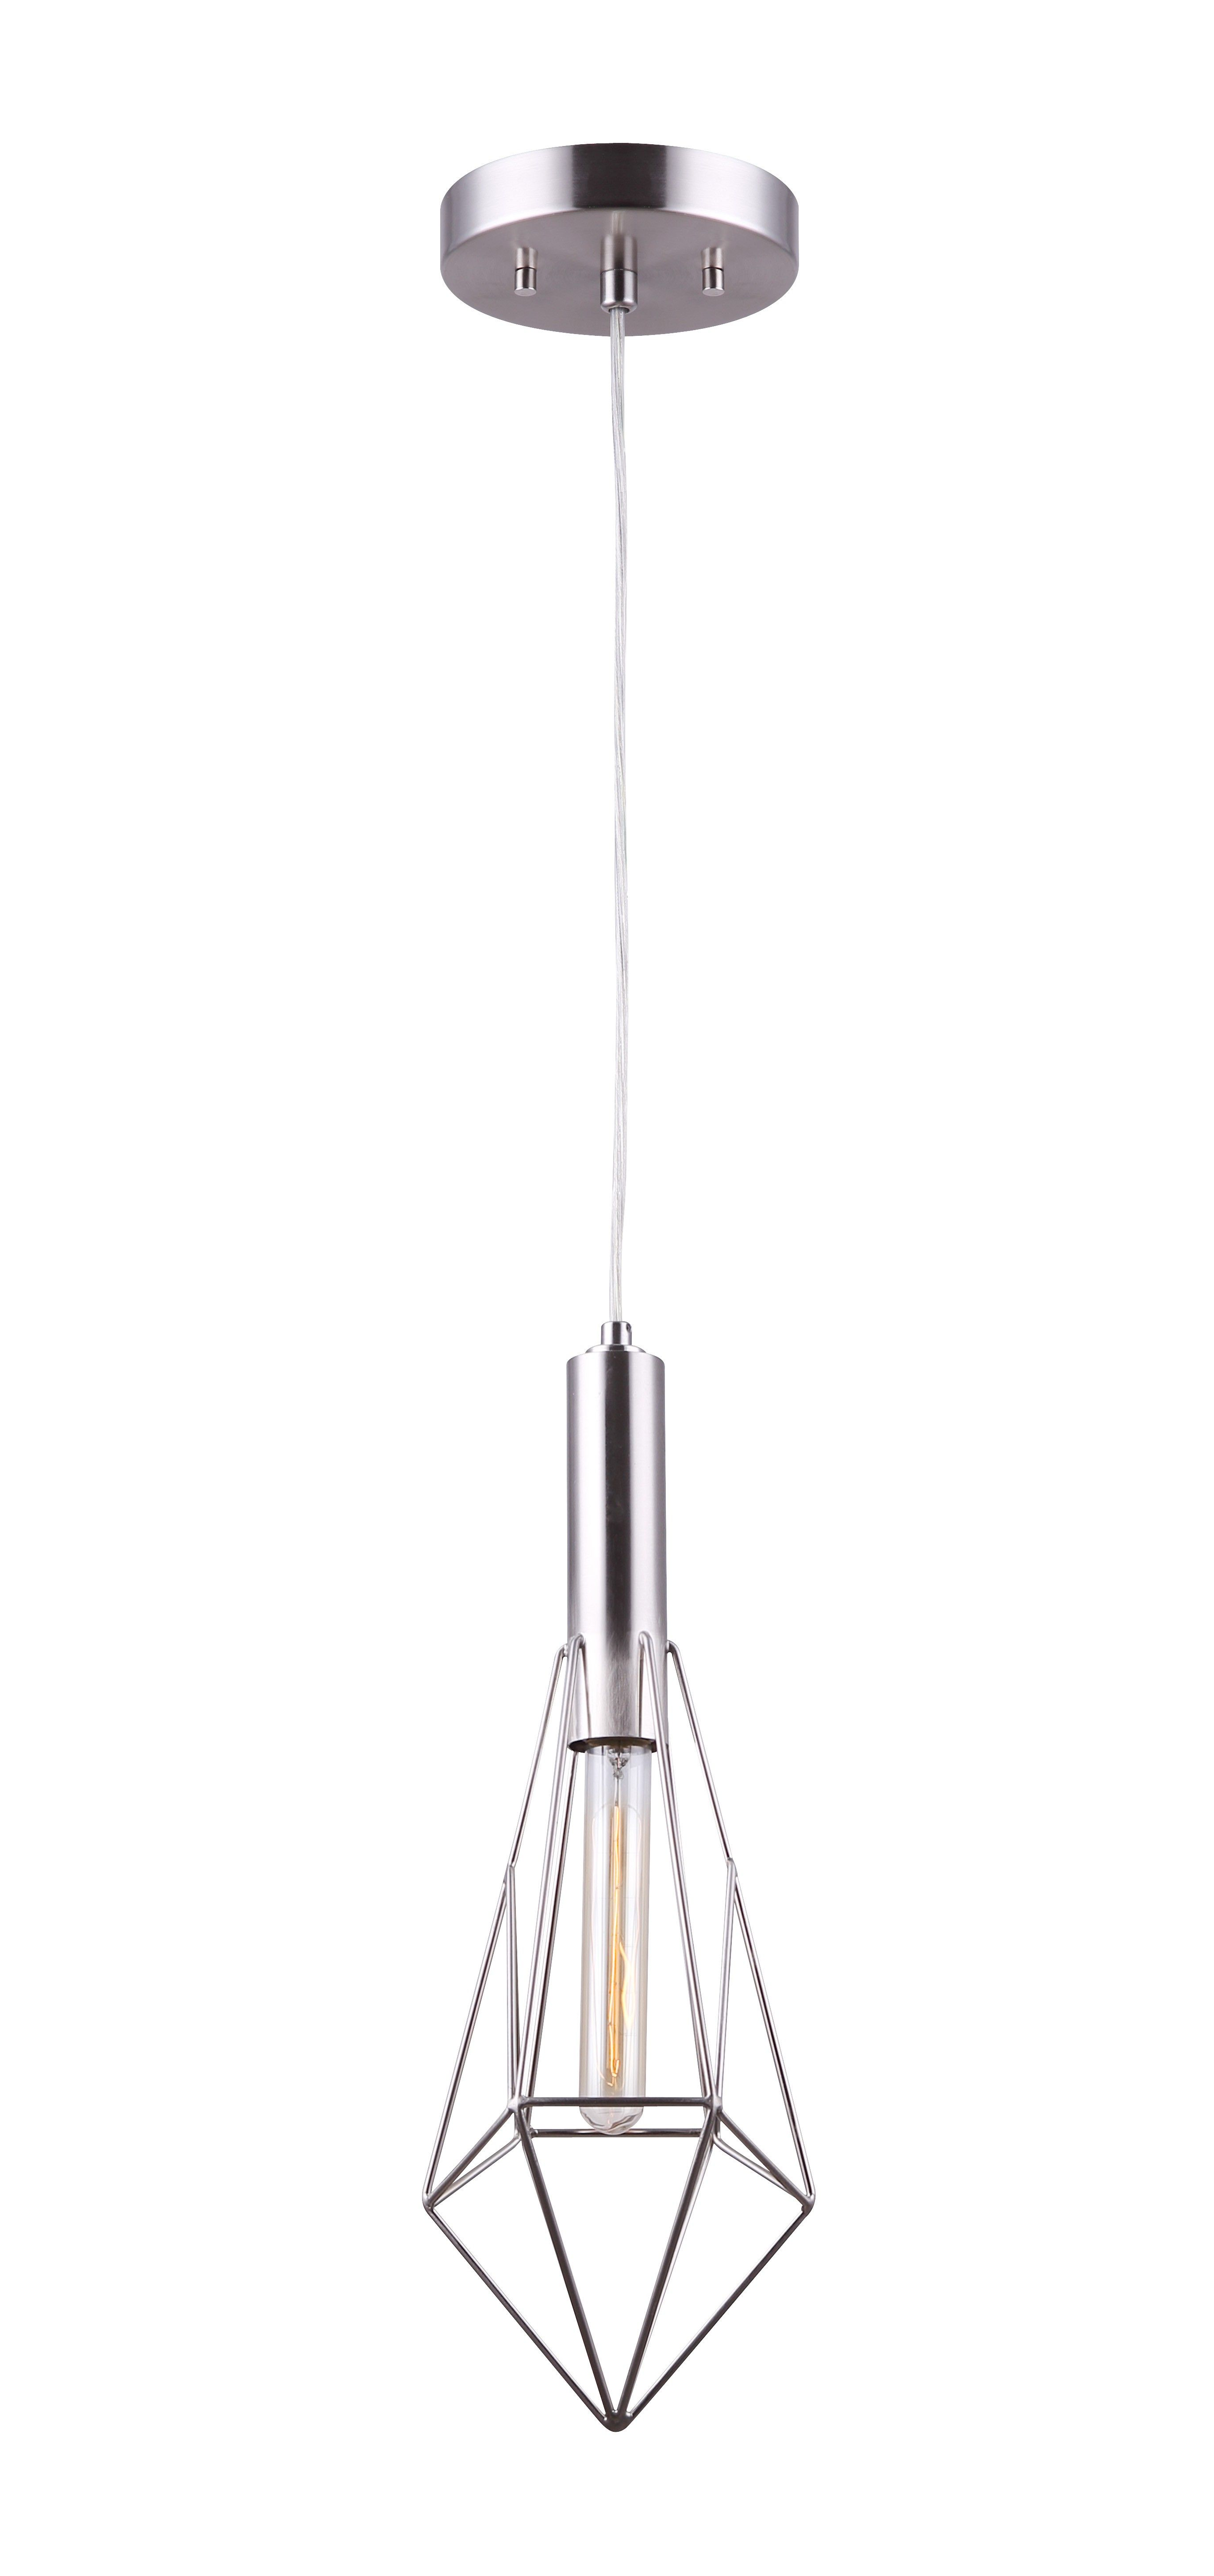 Canarm iplabn greer light pendant brushed nickel in